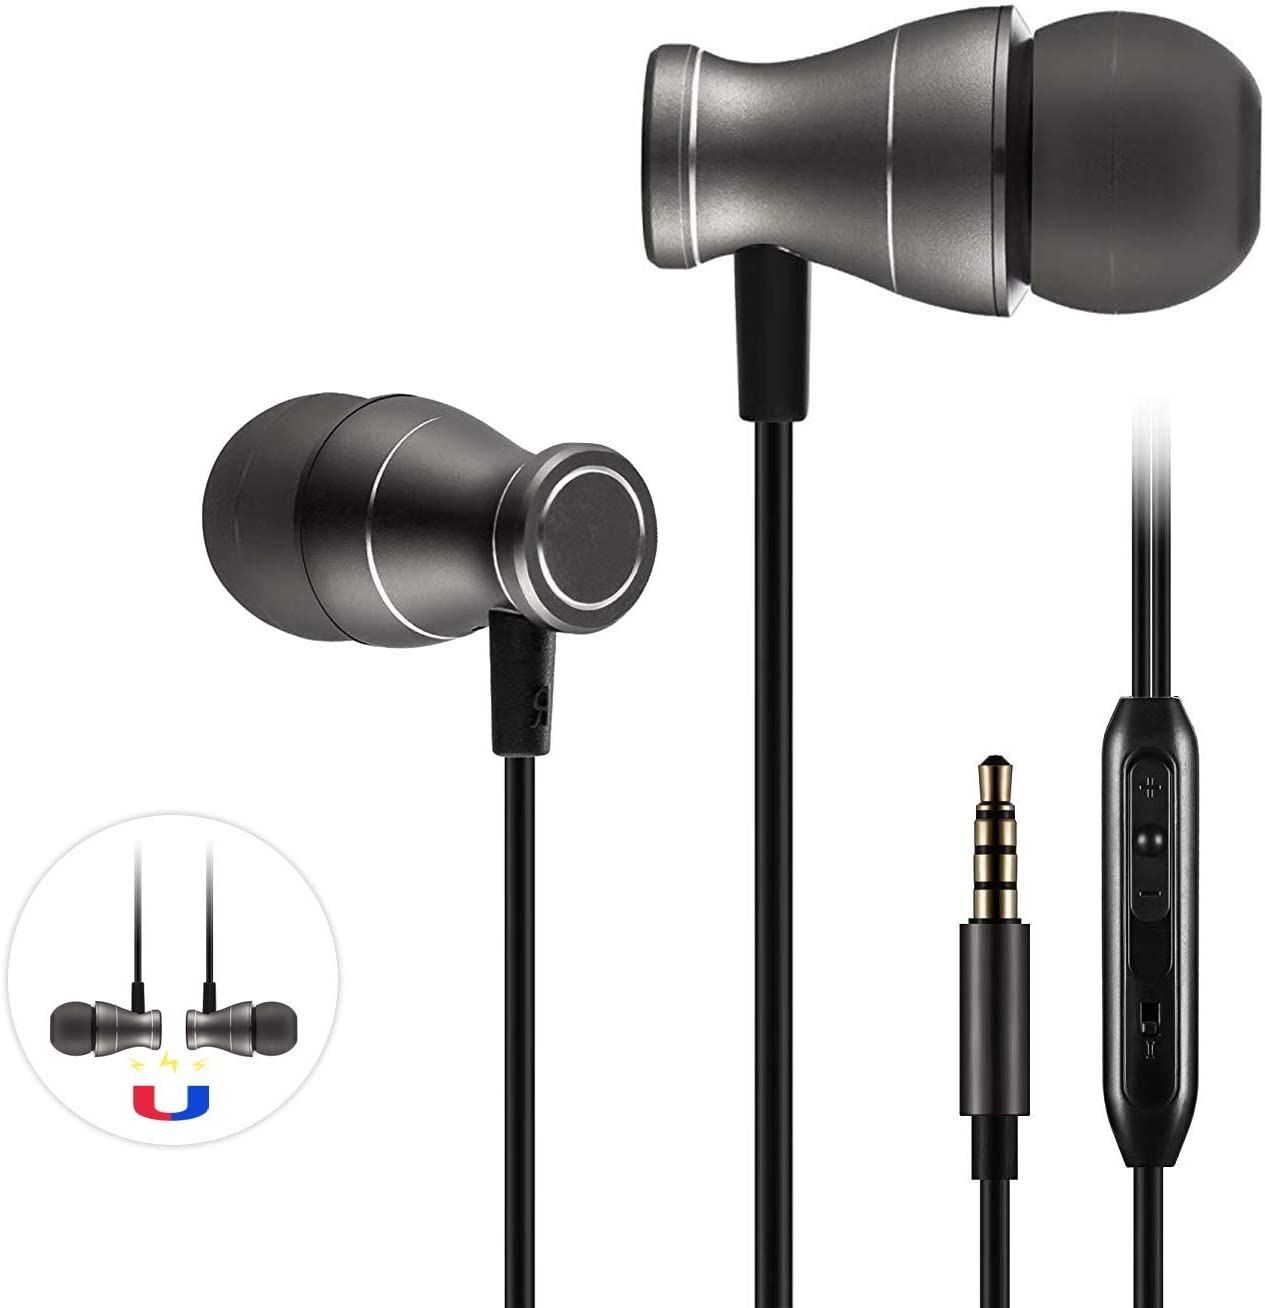 Wired in-Ear Headphones, Magnetic Microphones Earphones Noise Isolating Workout Running Commute Gaming Tangle Free Earbuds with MIC in-line Volume Control for 3.5mm Jack Phones Tablets Black